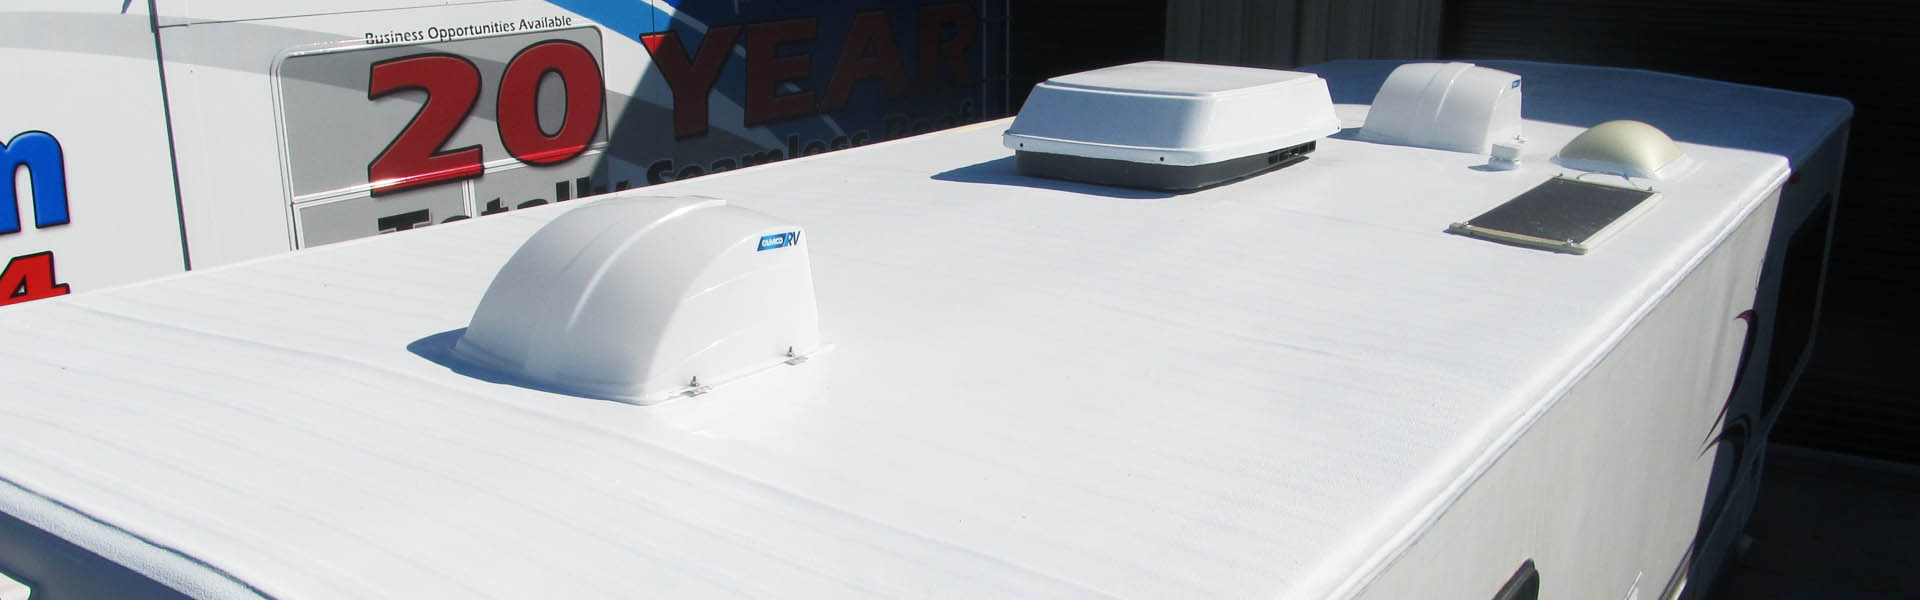 rv roof after being repaired